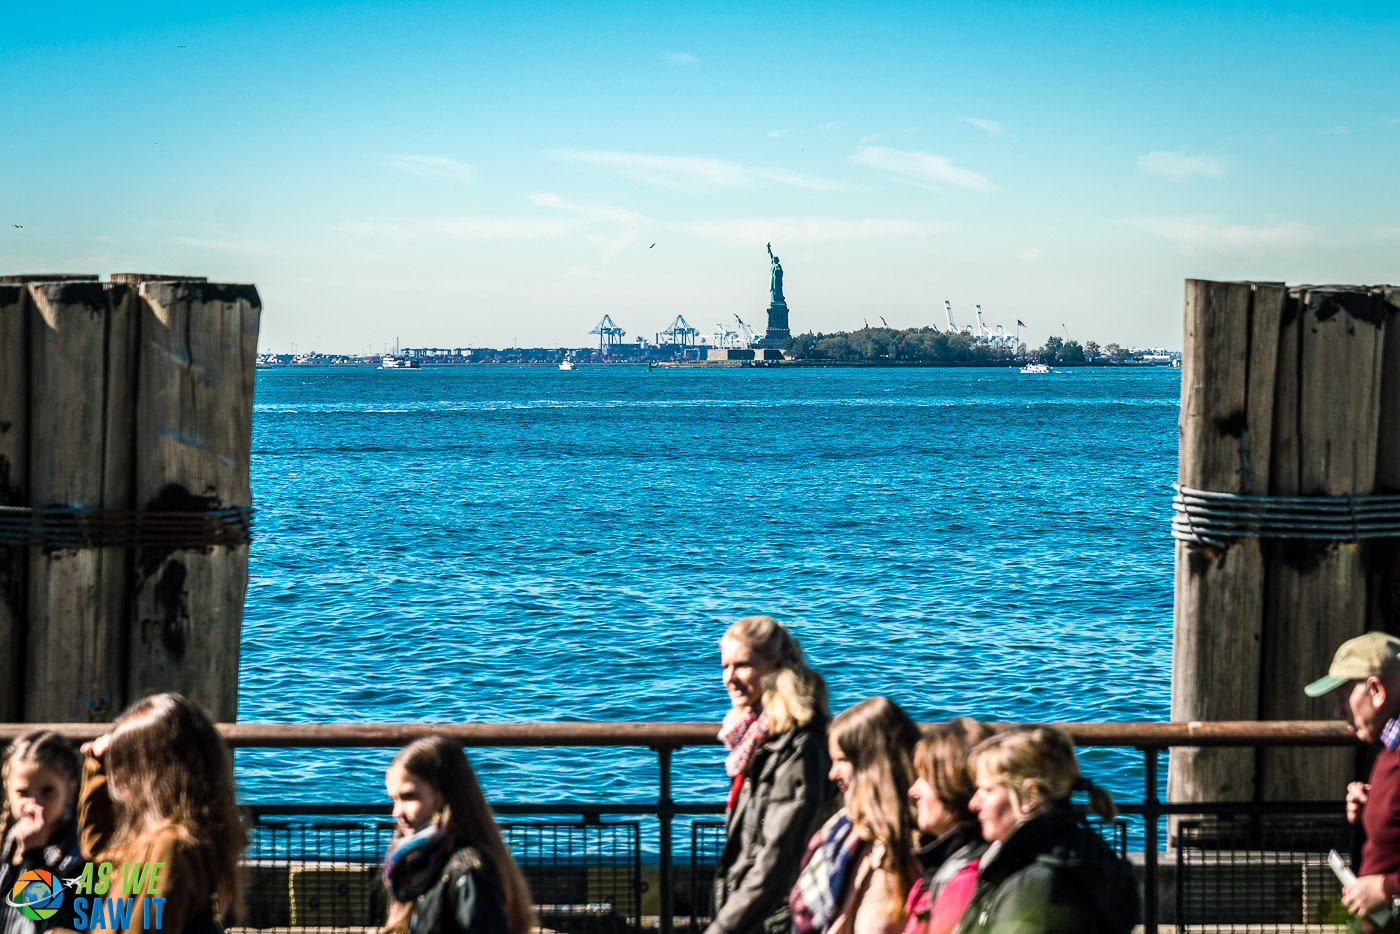 View of Lady Liberty from Battery Park. People in foreground have just exited the Liberty Island ferry.